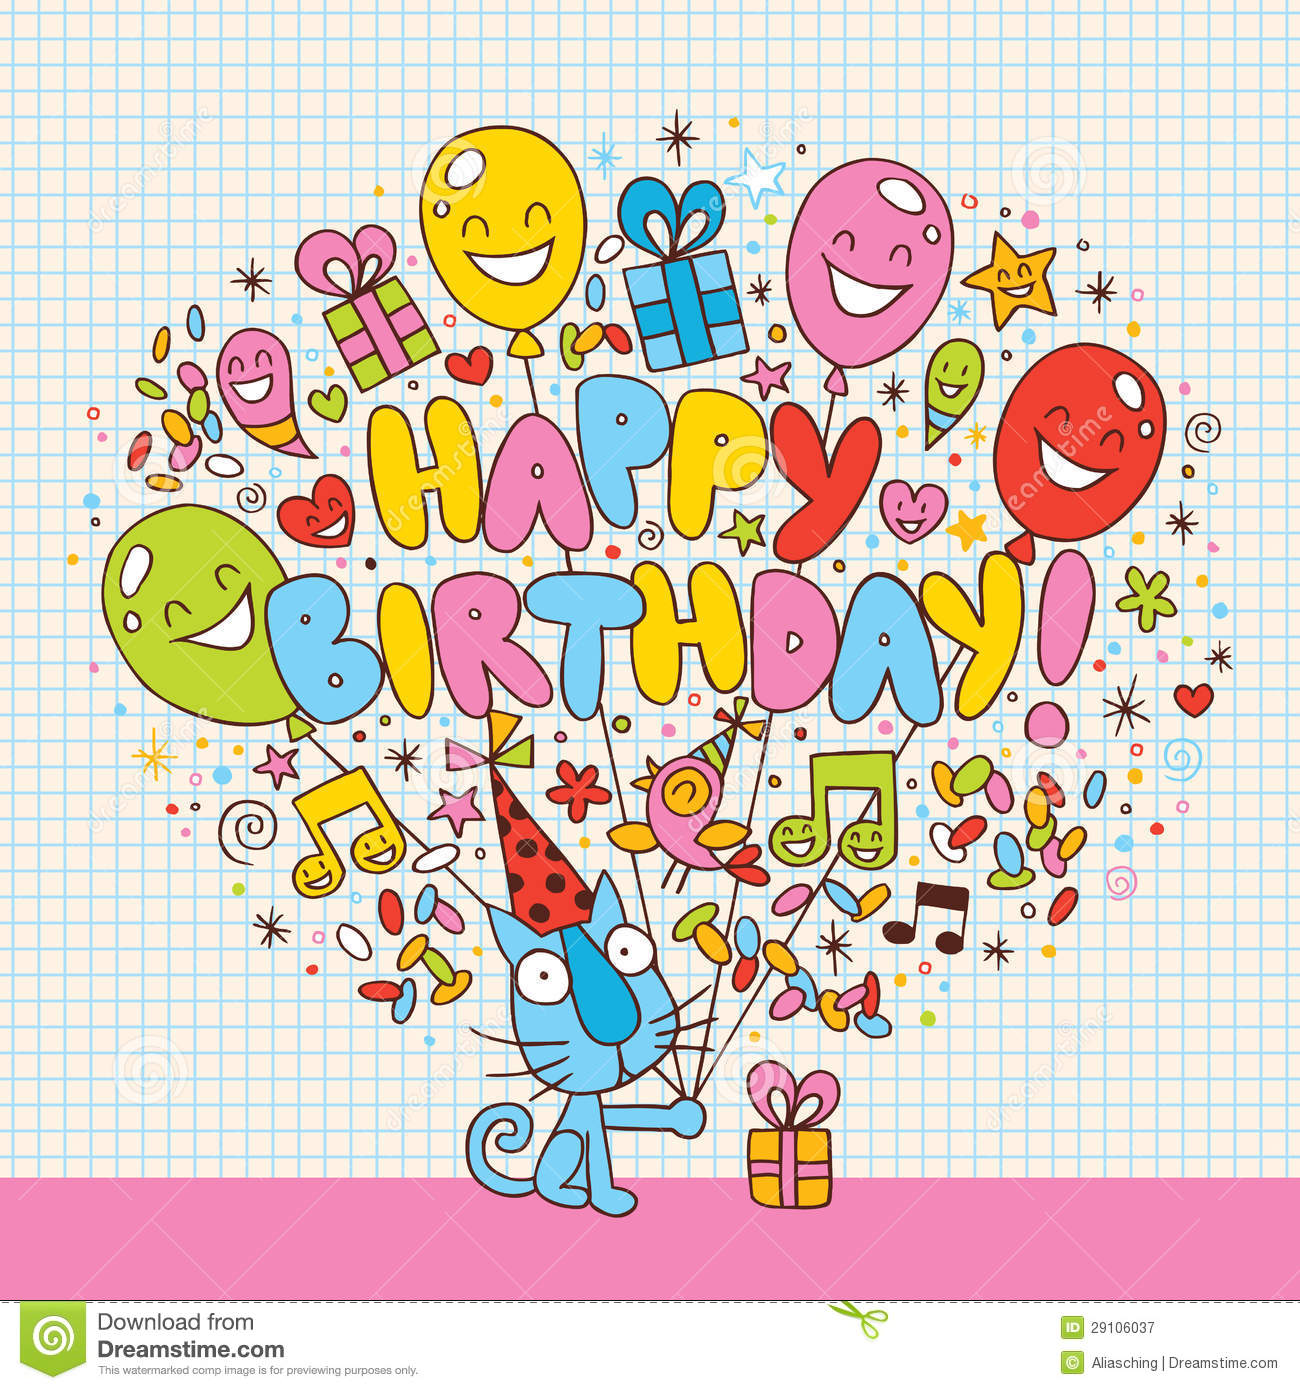 Happy Birthday Card Royalty Free Stock Photography - Image ...